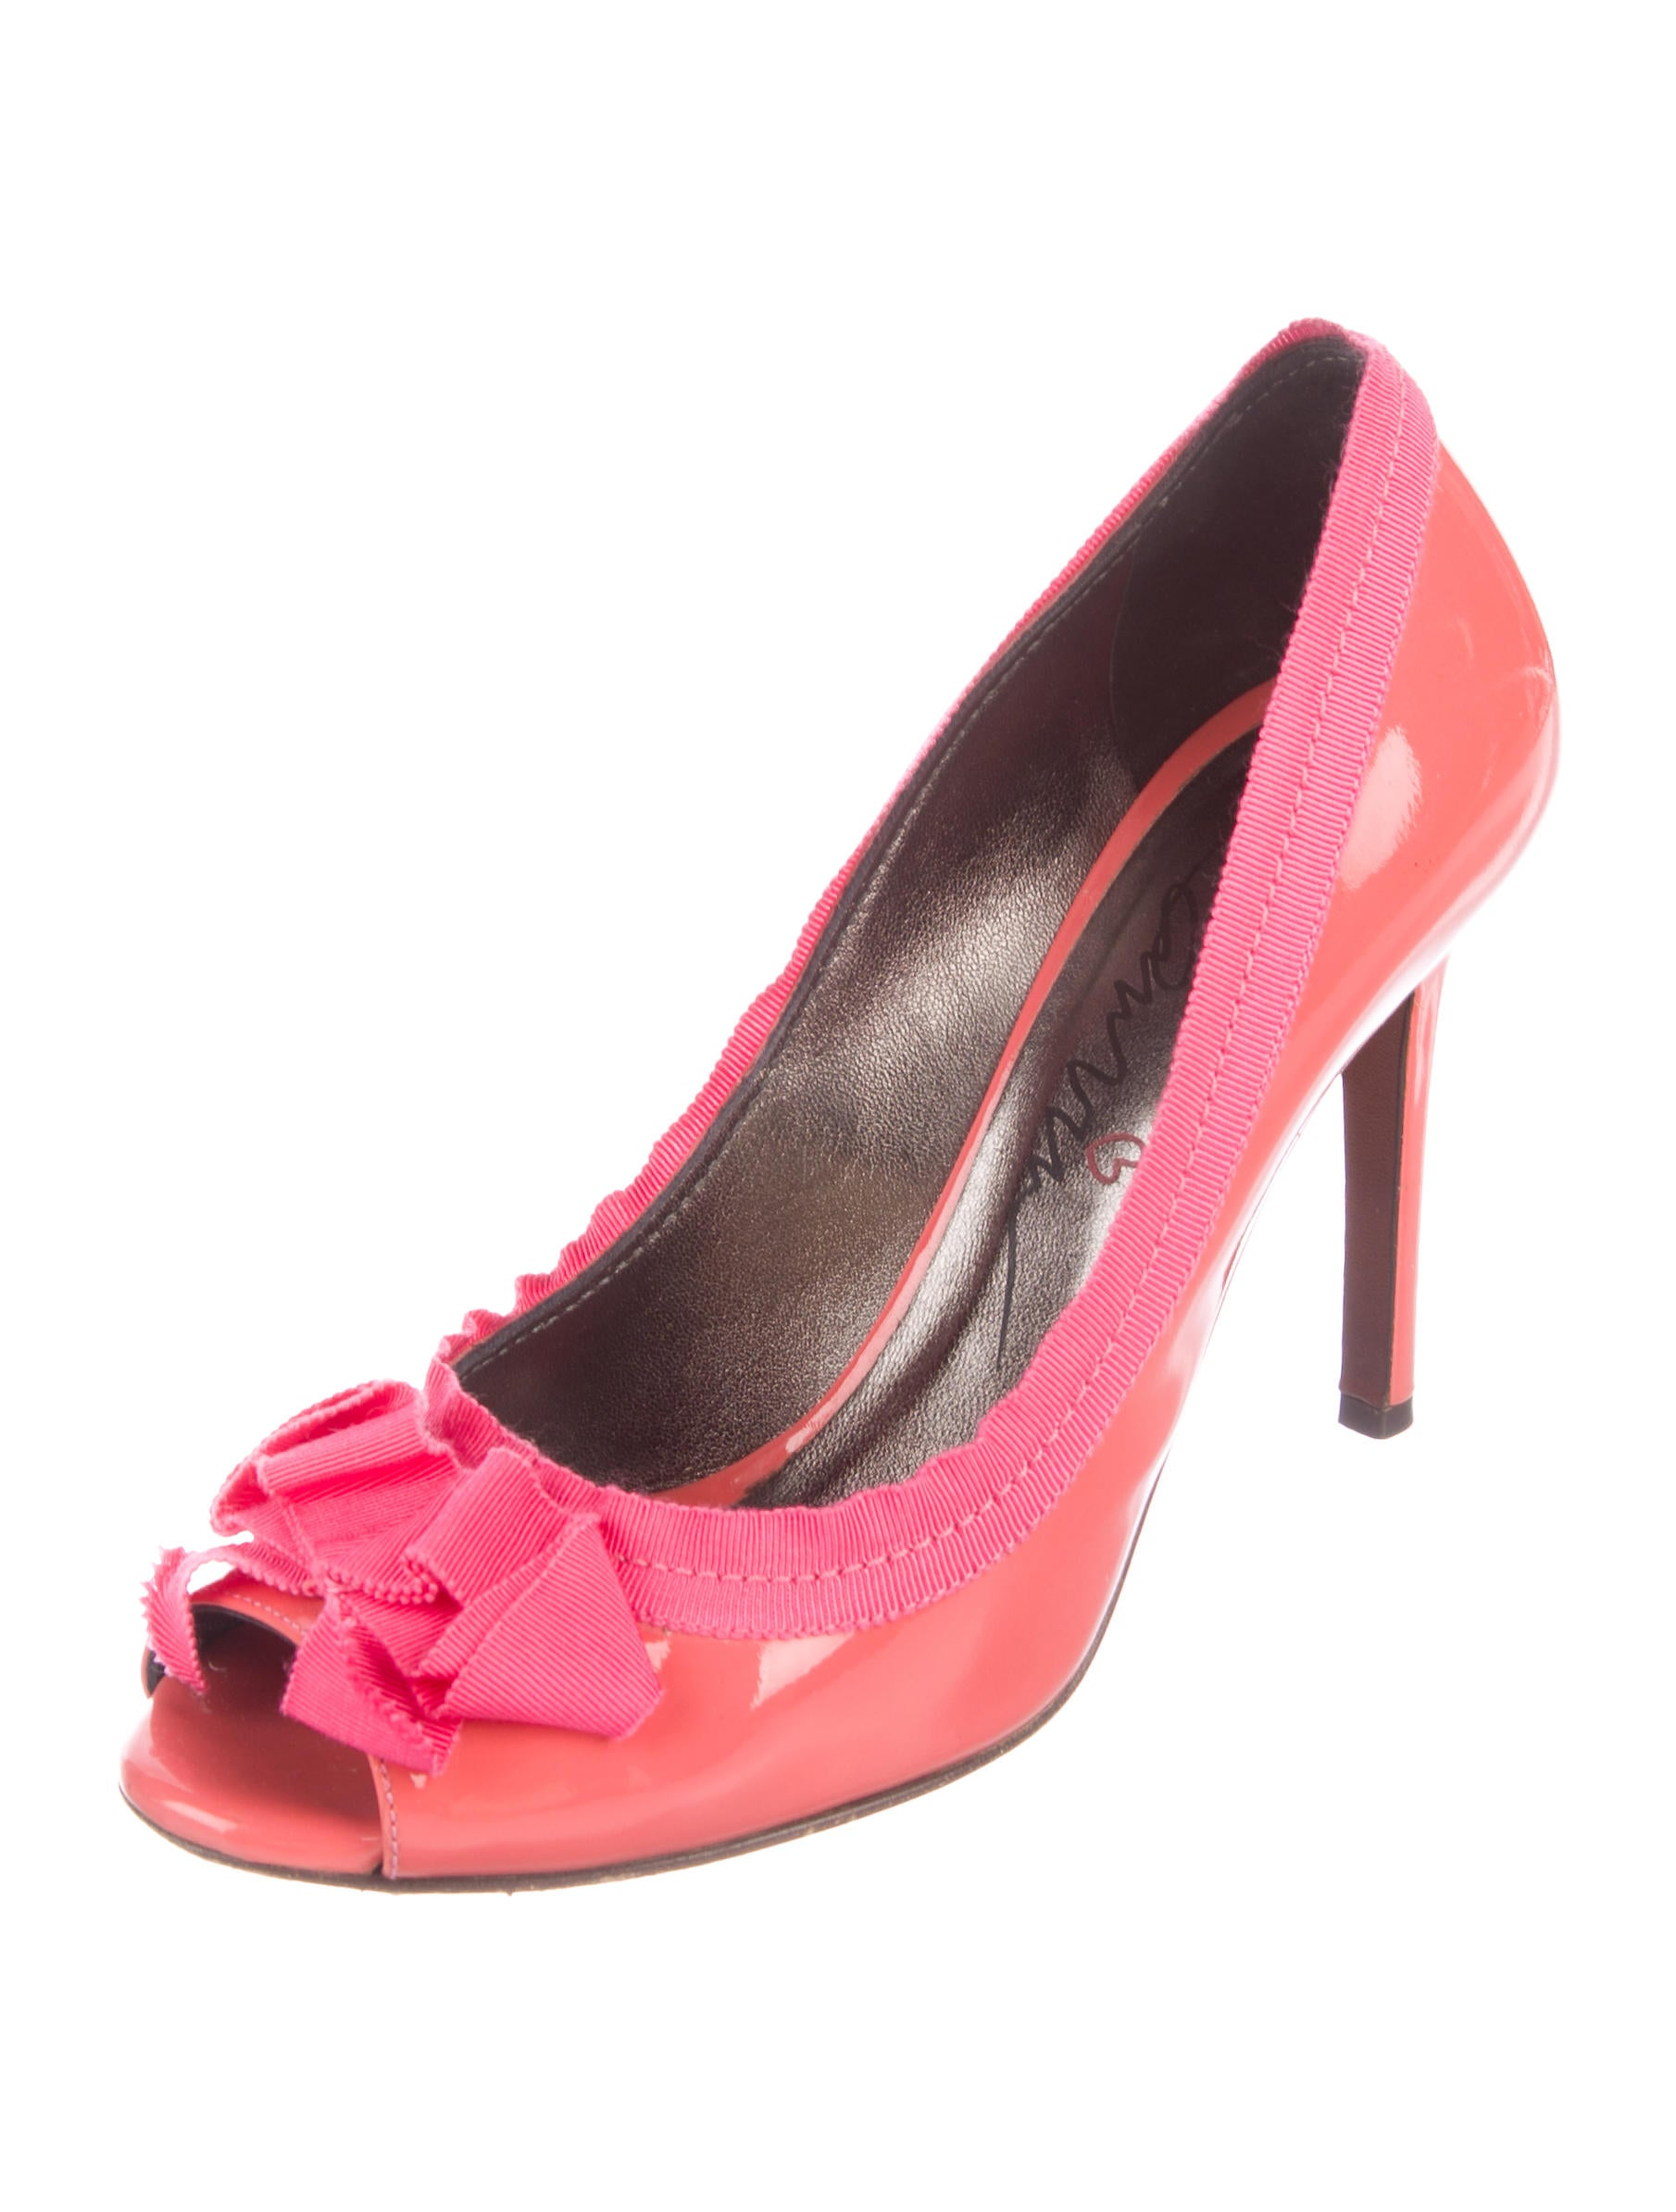 Lanvin Patent Leather Bow Pumps cheap best sale amazing price for sale wide range of cheap price get authentic sale online buy cheap lowest price uWWuHTmk